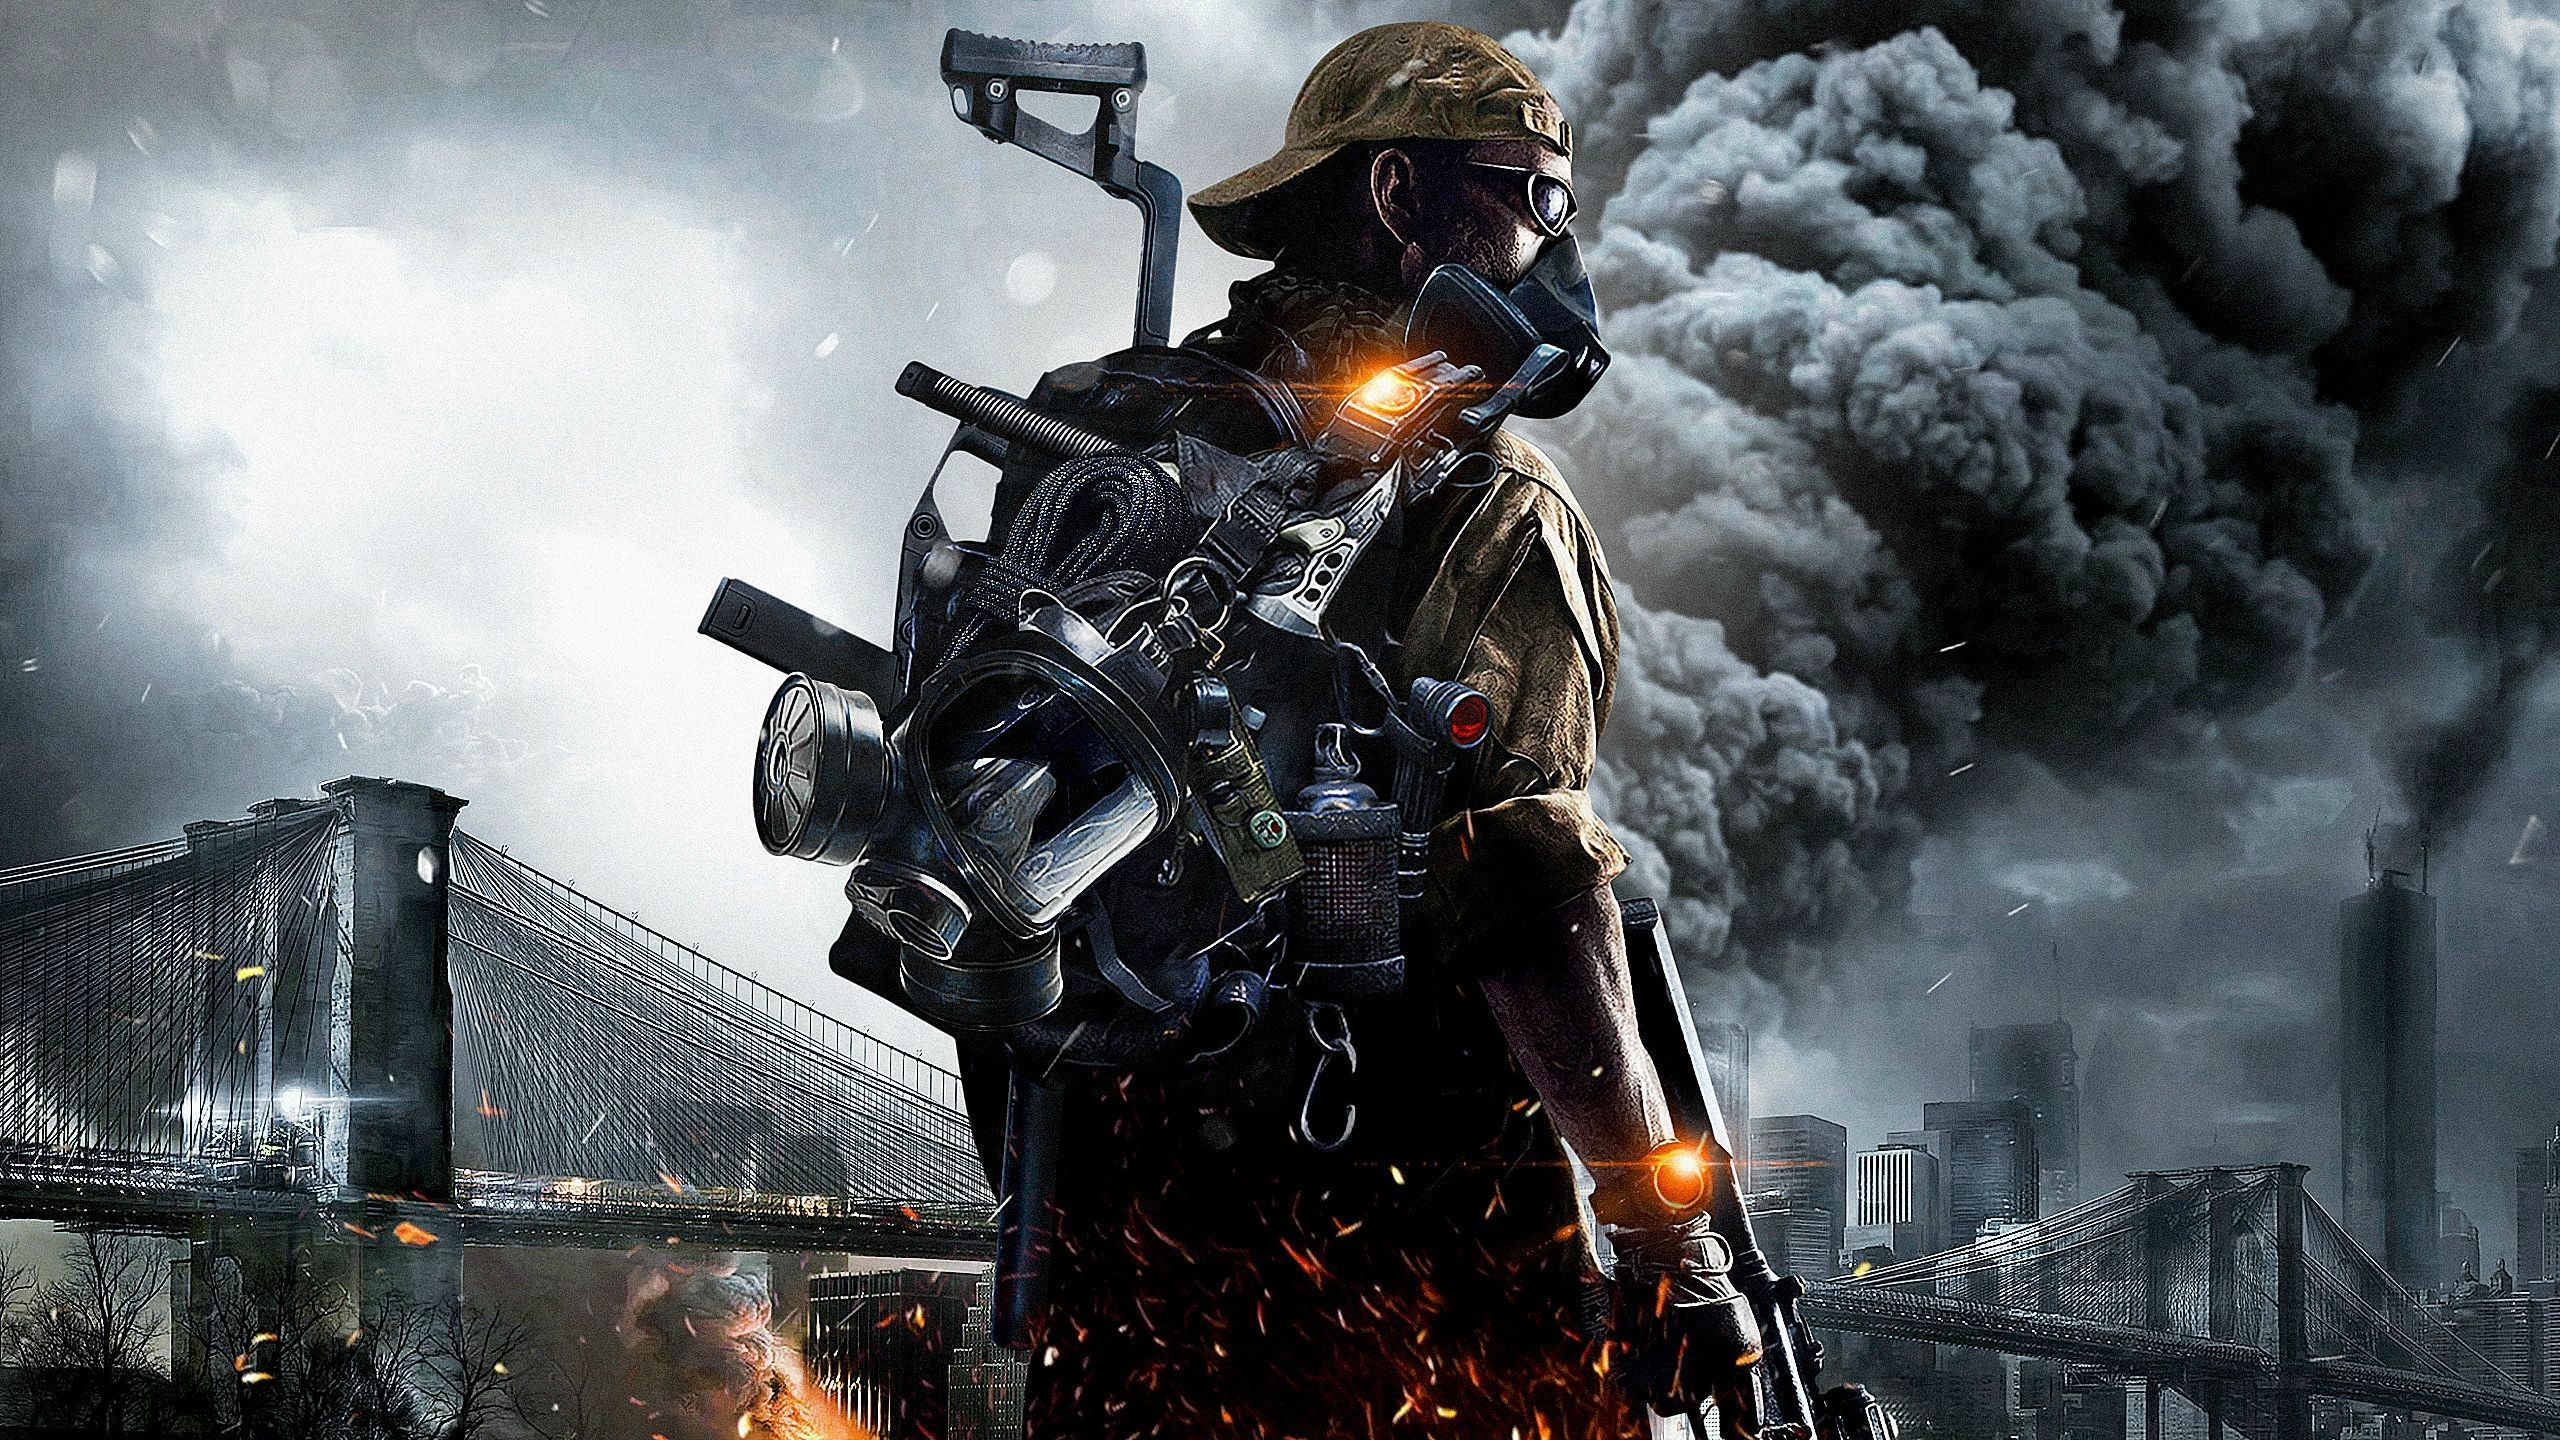 The Division Wallpapers Hd Wallpaper Collections 4kwallpaper Wiki